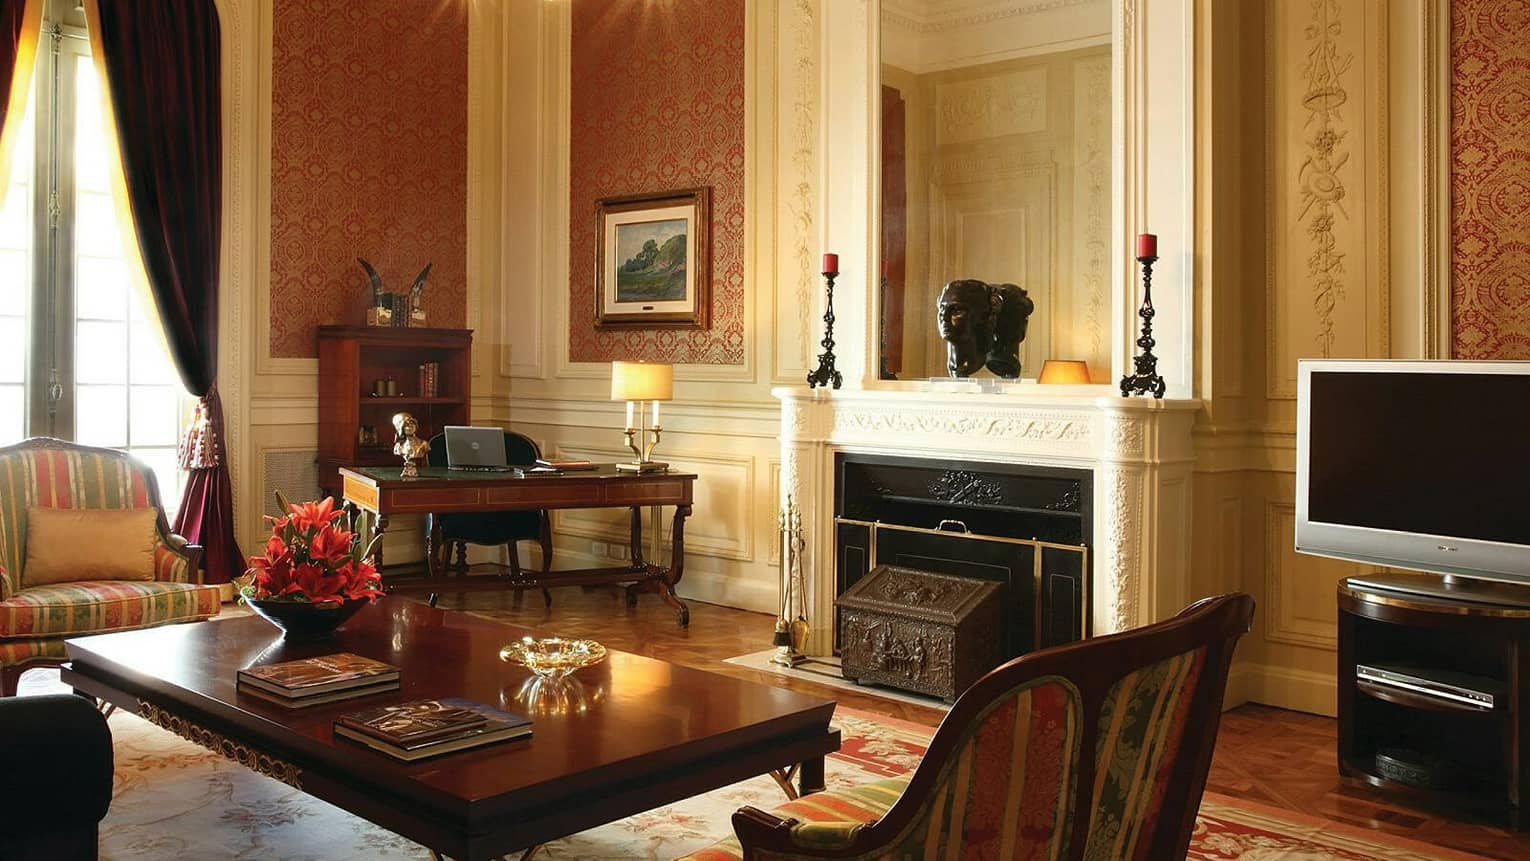 La Mansión Royale Suite living room with white fireplace mantel, dark wood furniture, Old World decor